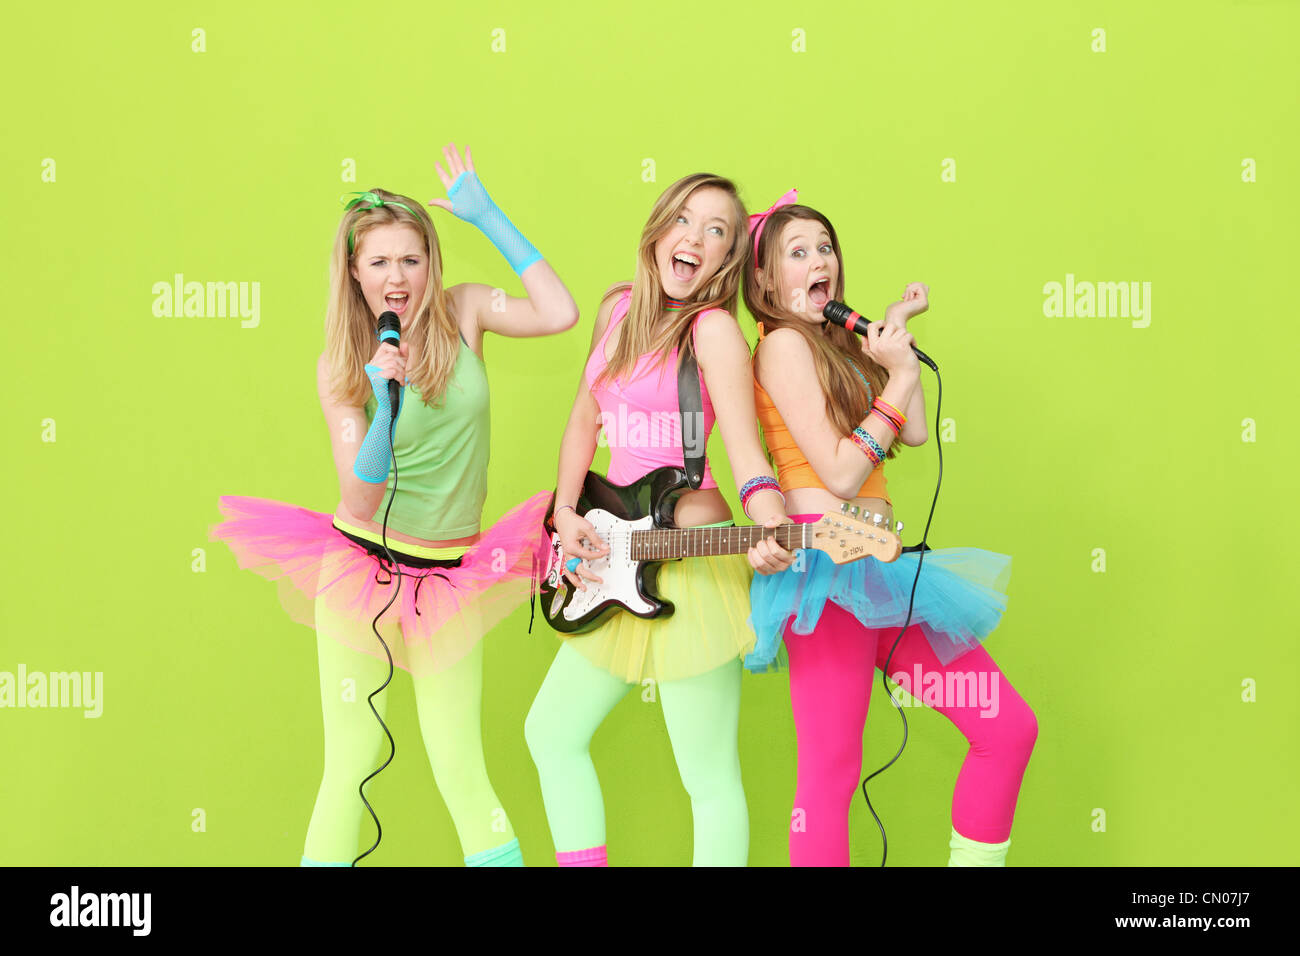 girl band, group of girls singing and playing guitar - Stock Image